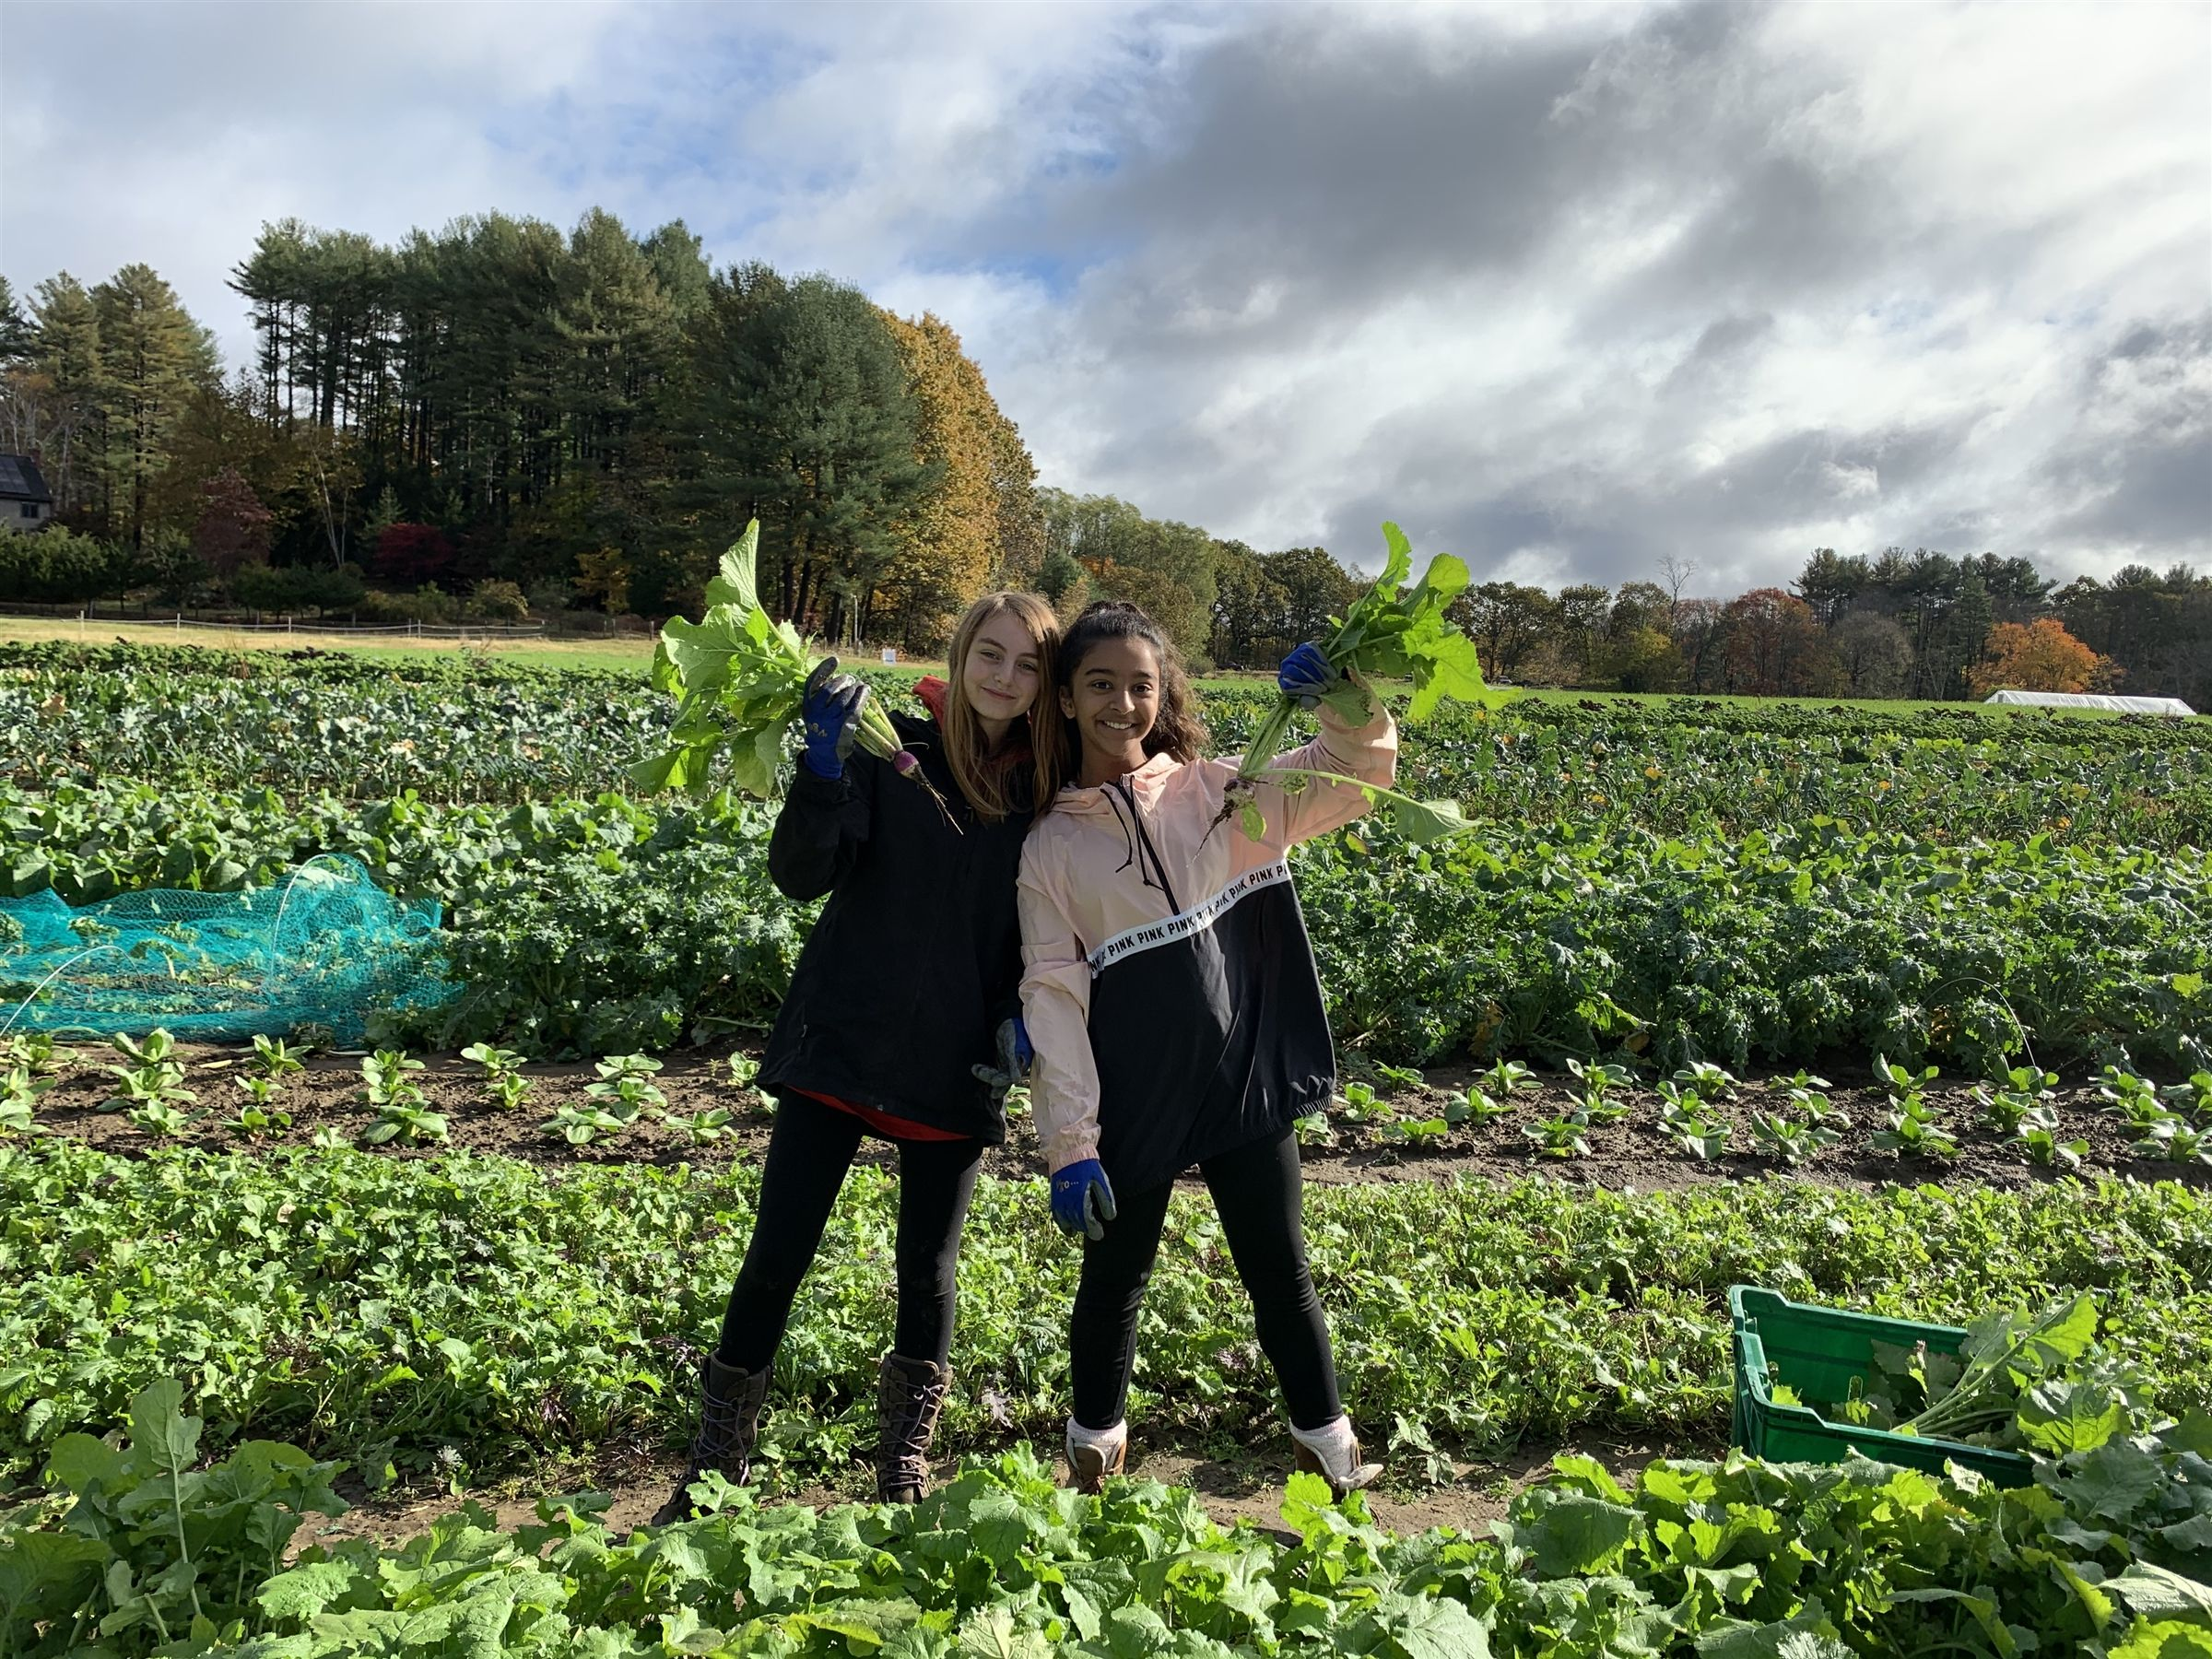 Seventh grade students volunteering at a local farm during their week of service in the fall.